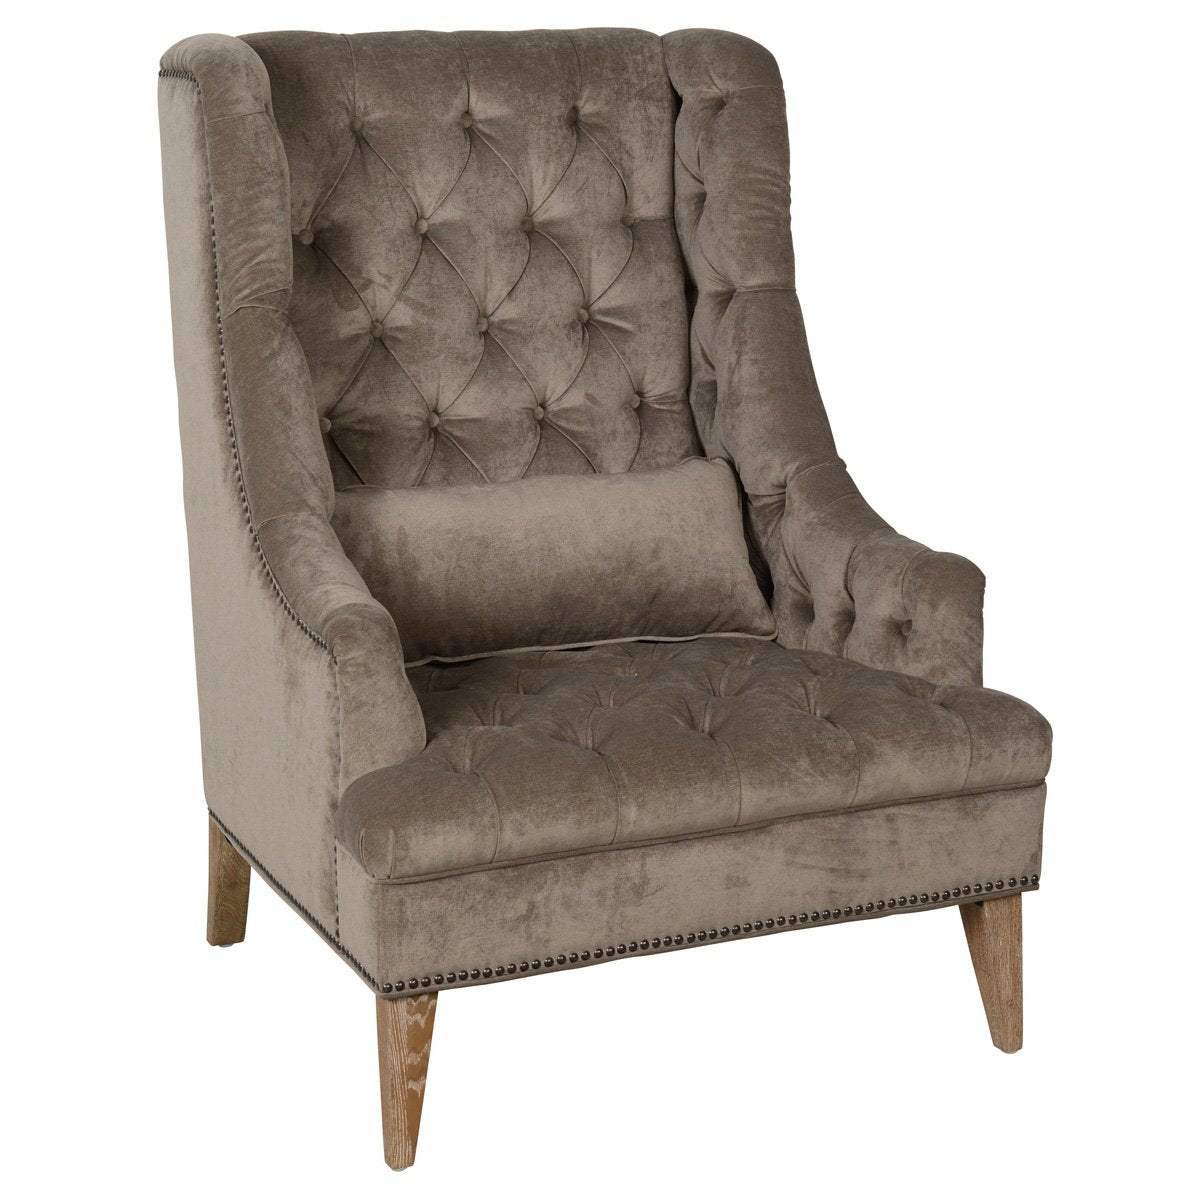 Capela Club Chair Platinum